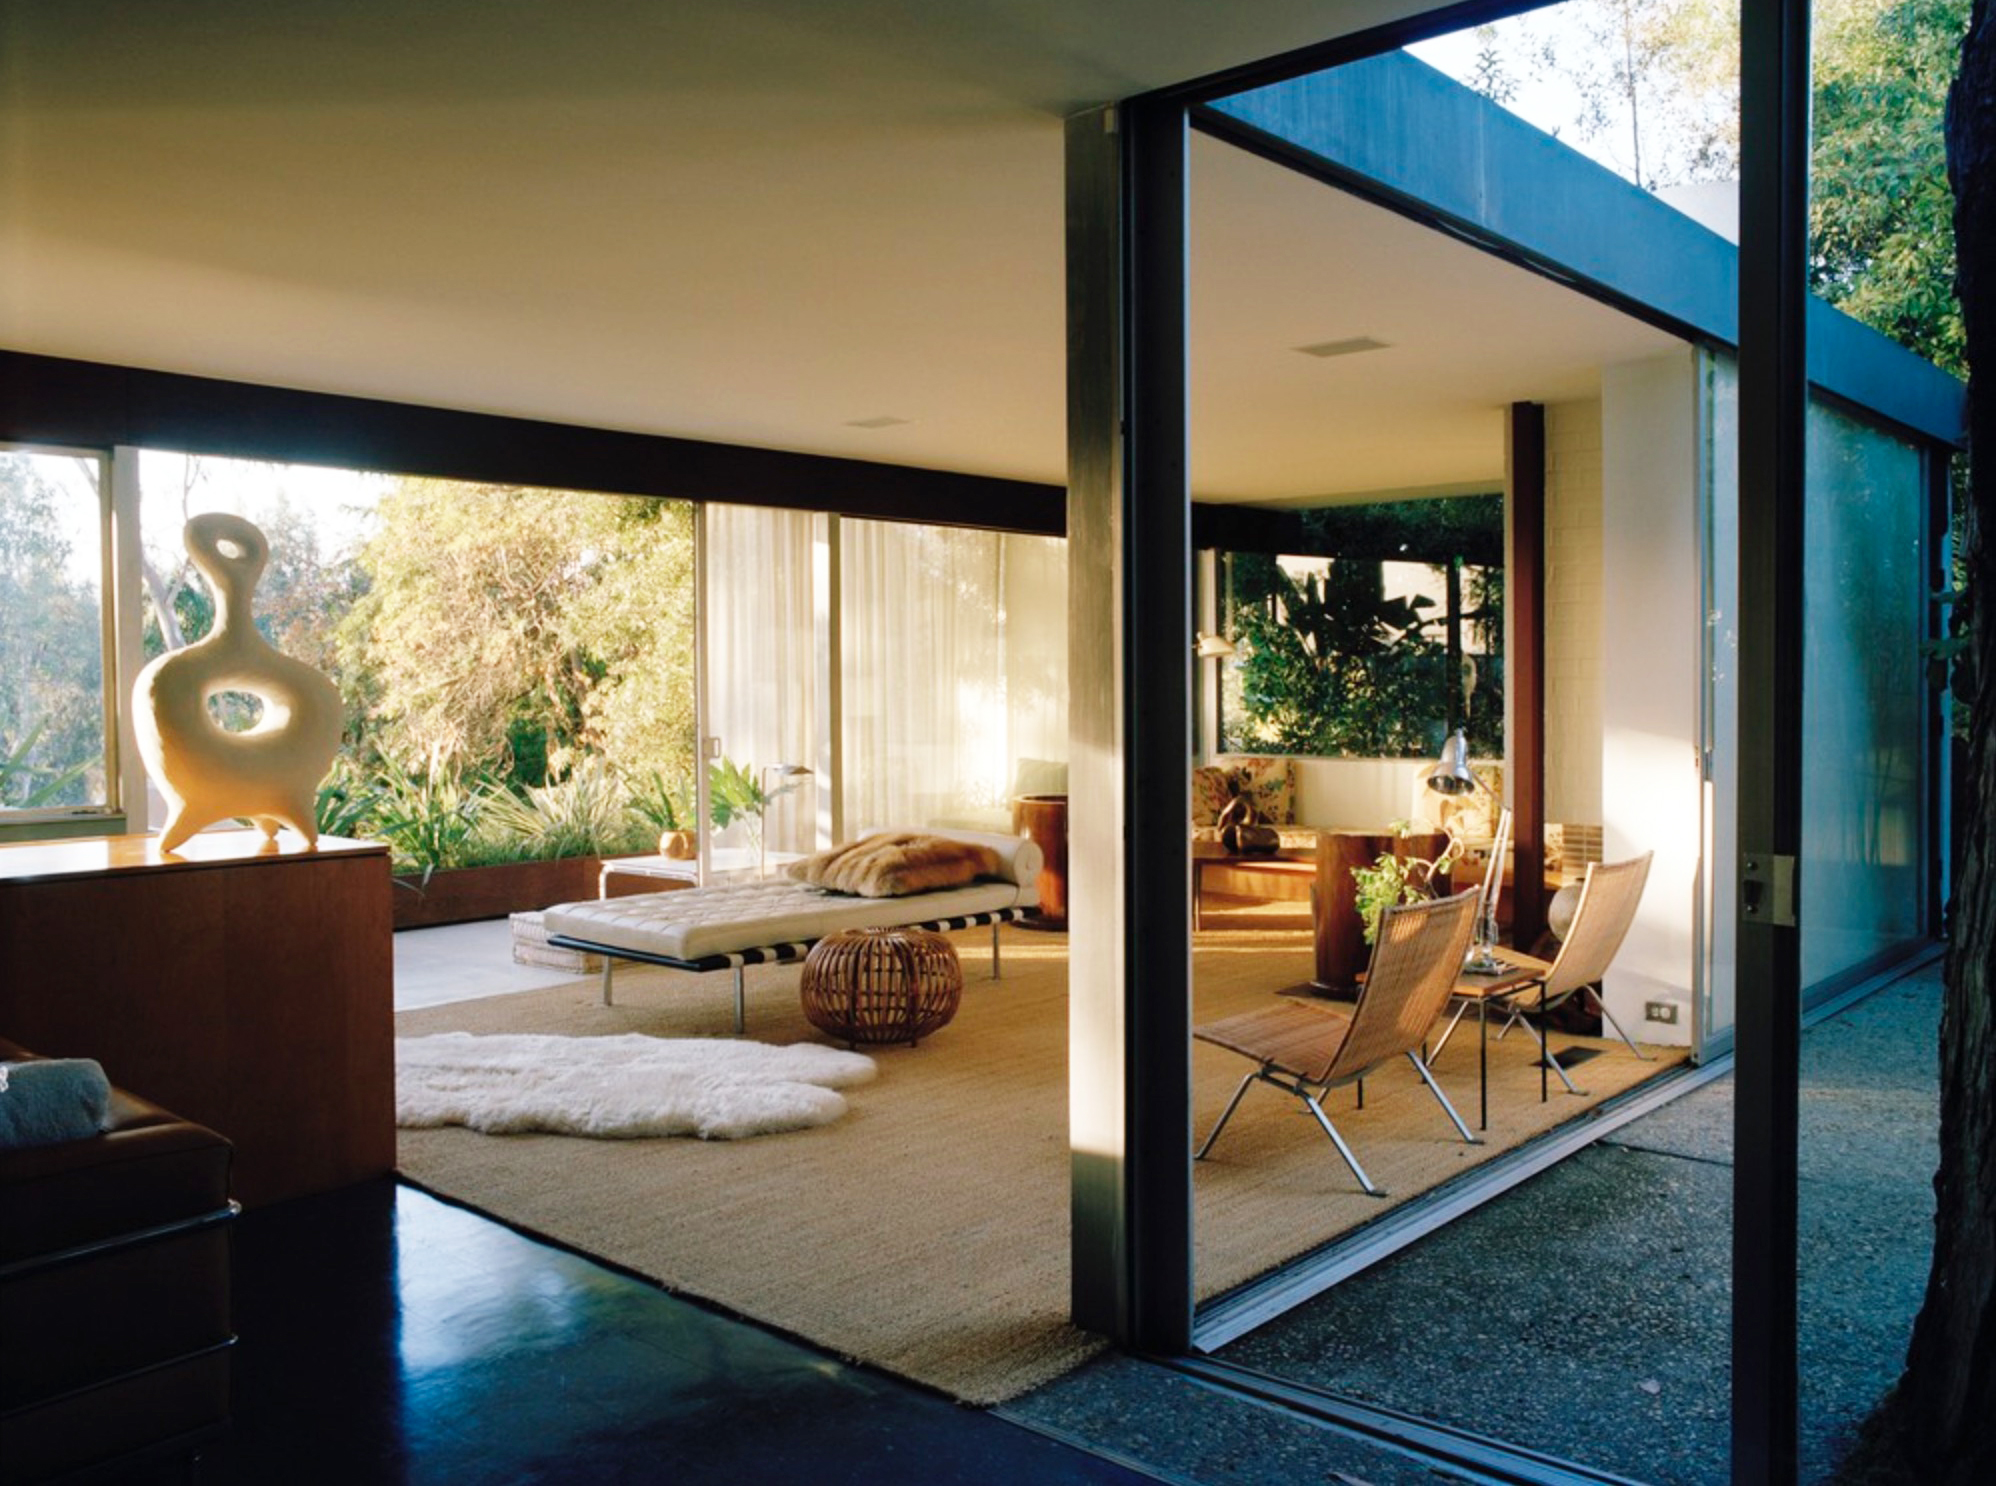 Netto Residence, Silver Lake, Los Angeles. As featured in Interiors: The Greatest Rooms of the Century